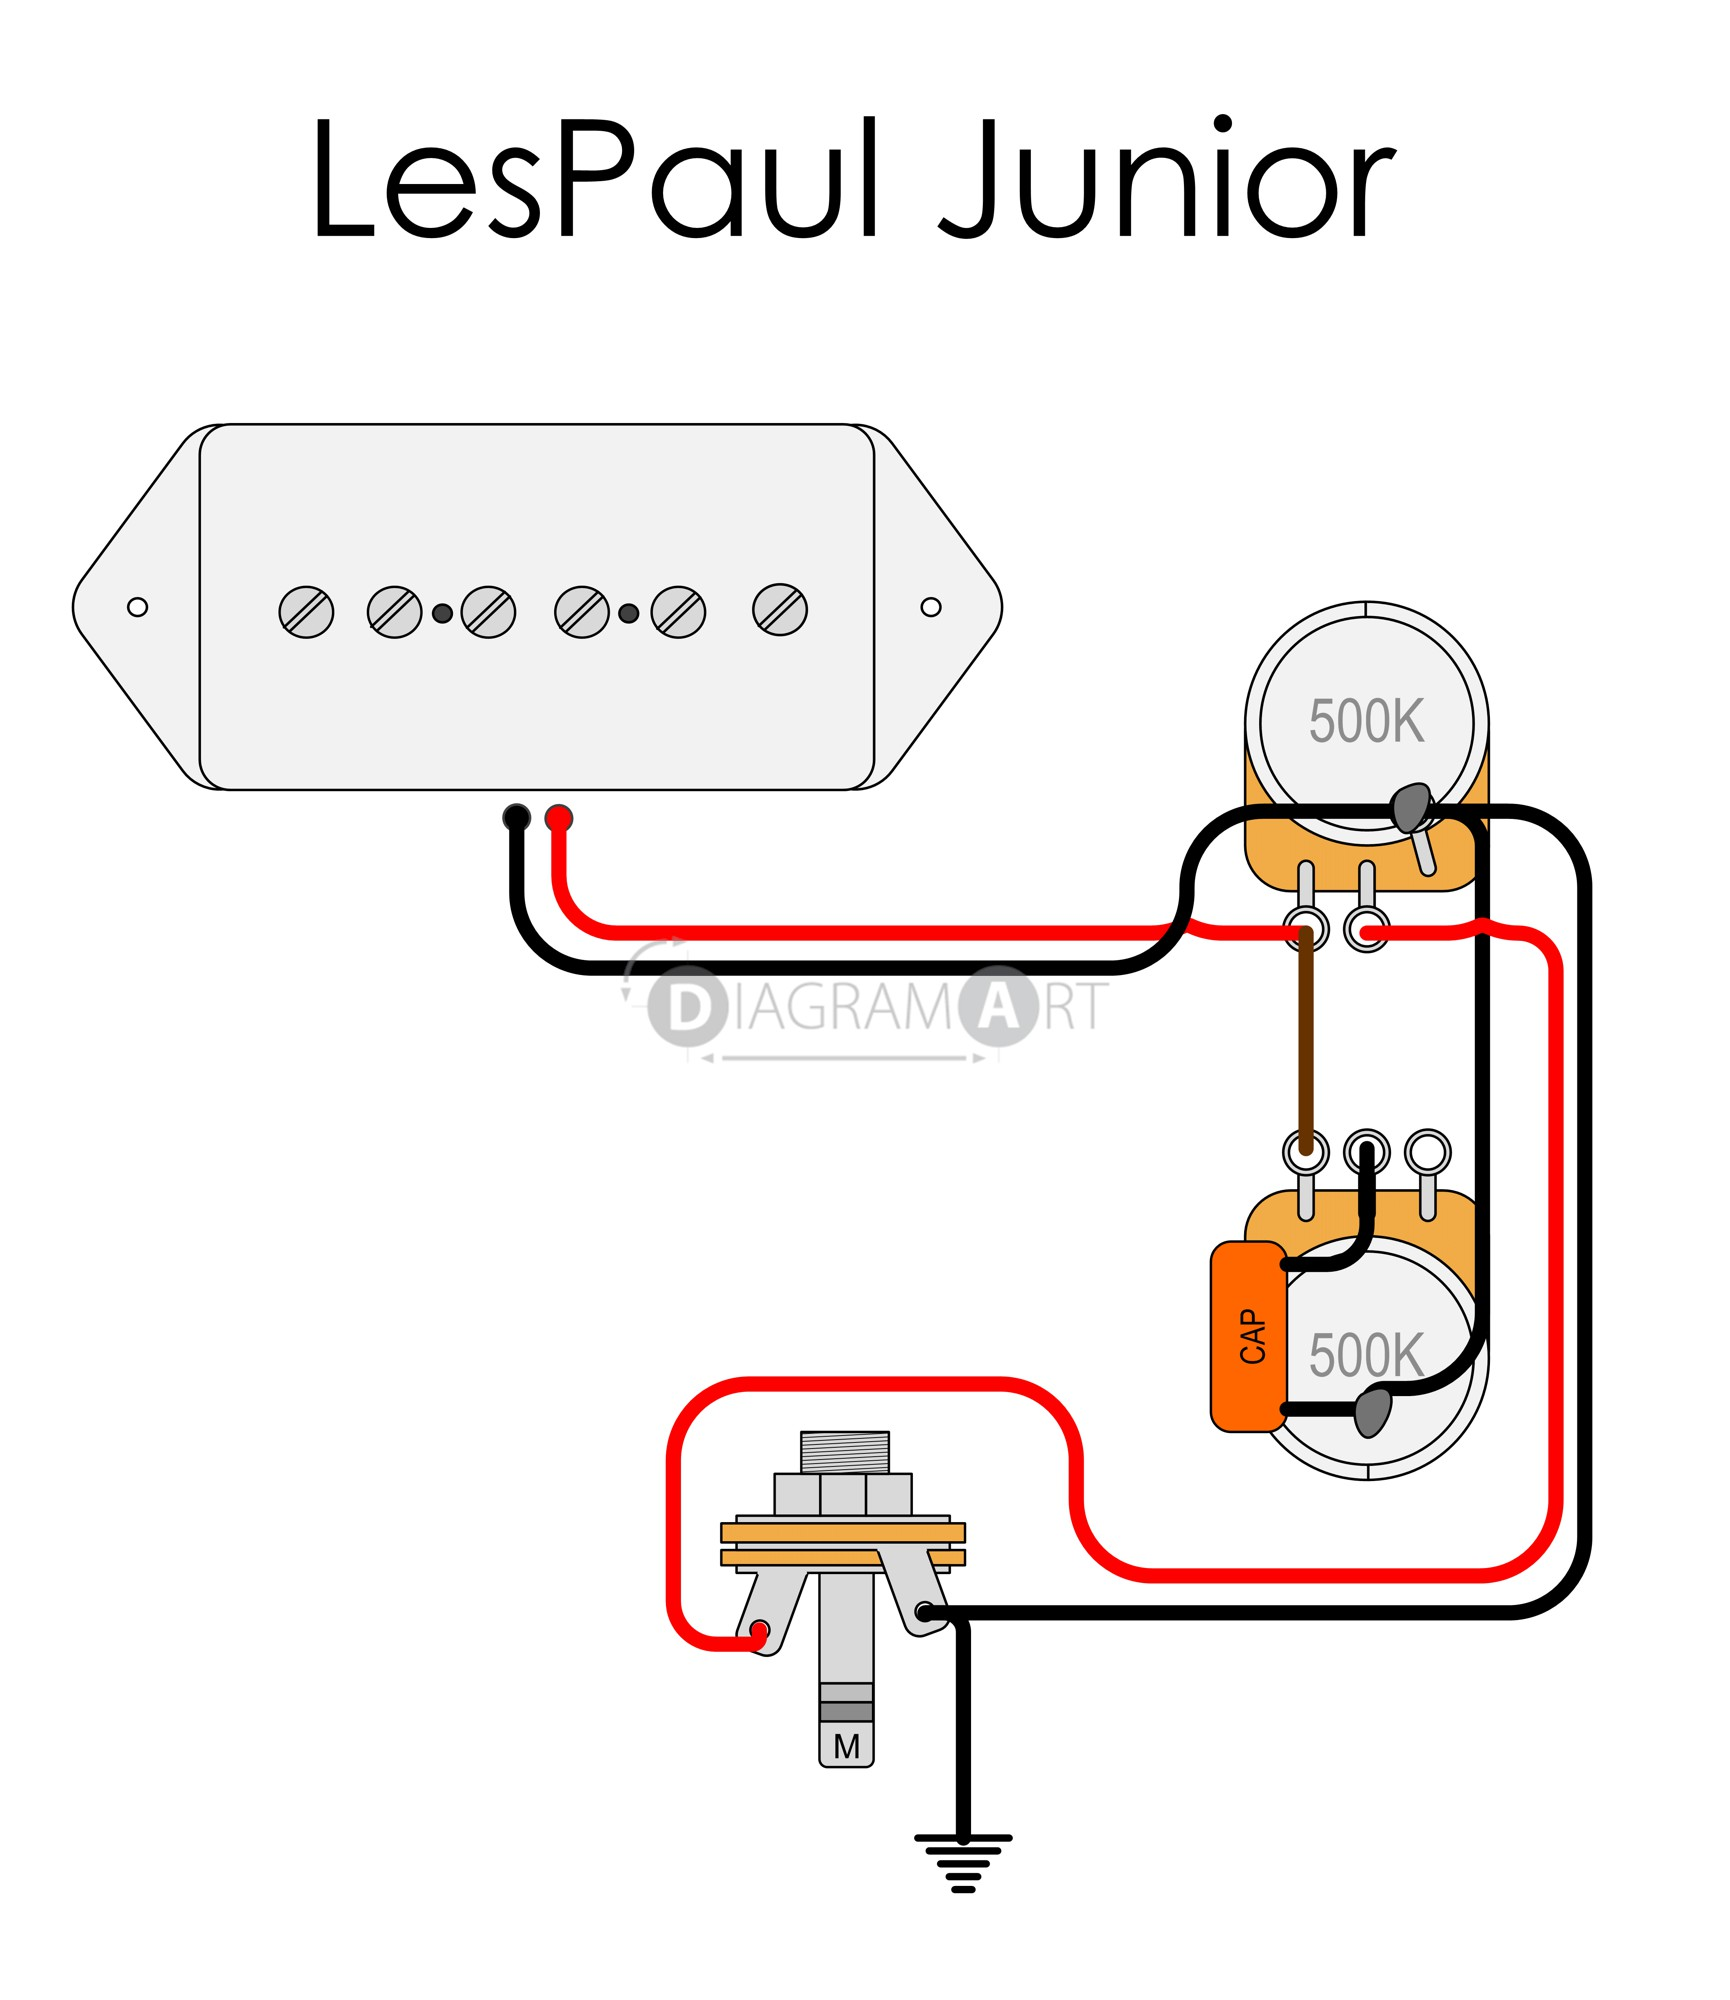 Junior Les Paul Wiring Diagram on les paul studio wiring diagram, 1959 les paul wiring diagram, artist les paul wiring diagram, les paul axcess wiring diagram, epiphone les paul wiring diagram, memphis les paul wiring diagram, les paul recording wiring diagram, vintage les paul wiring diagram, les paul custom wiring diagram, les paul supreme wiring diagram, epiphone les paul jr diagram, gibson les paul wiring diagram, slash les paul wiring diagram,